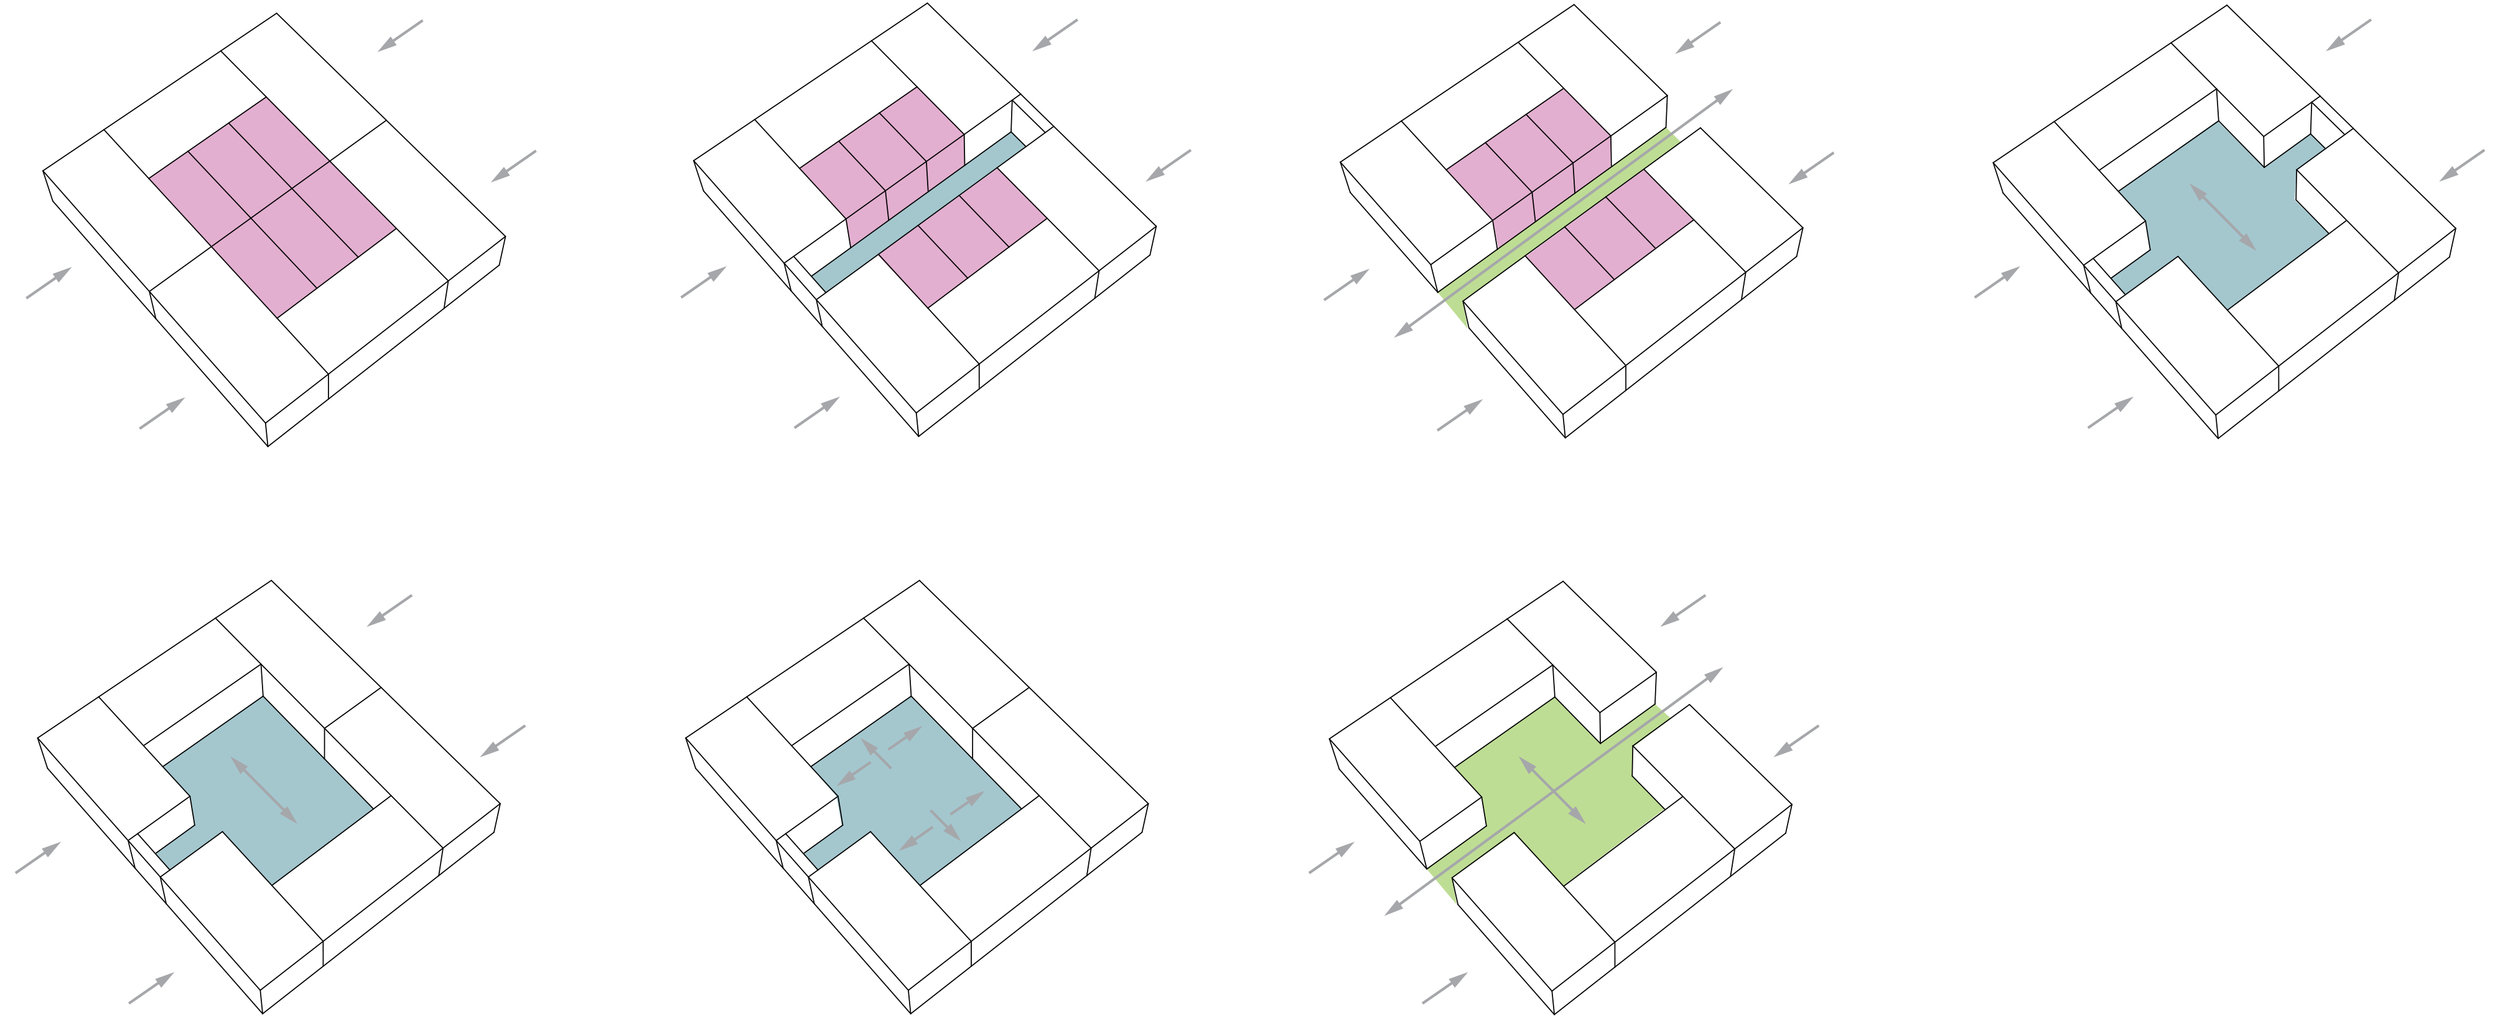 Public/Private Courtyard Study